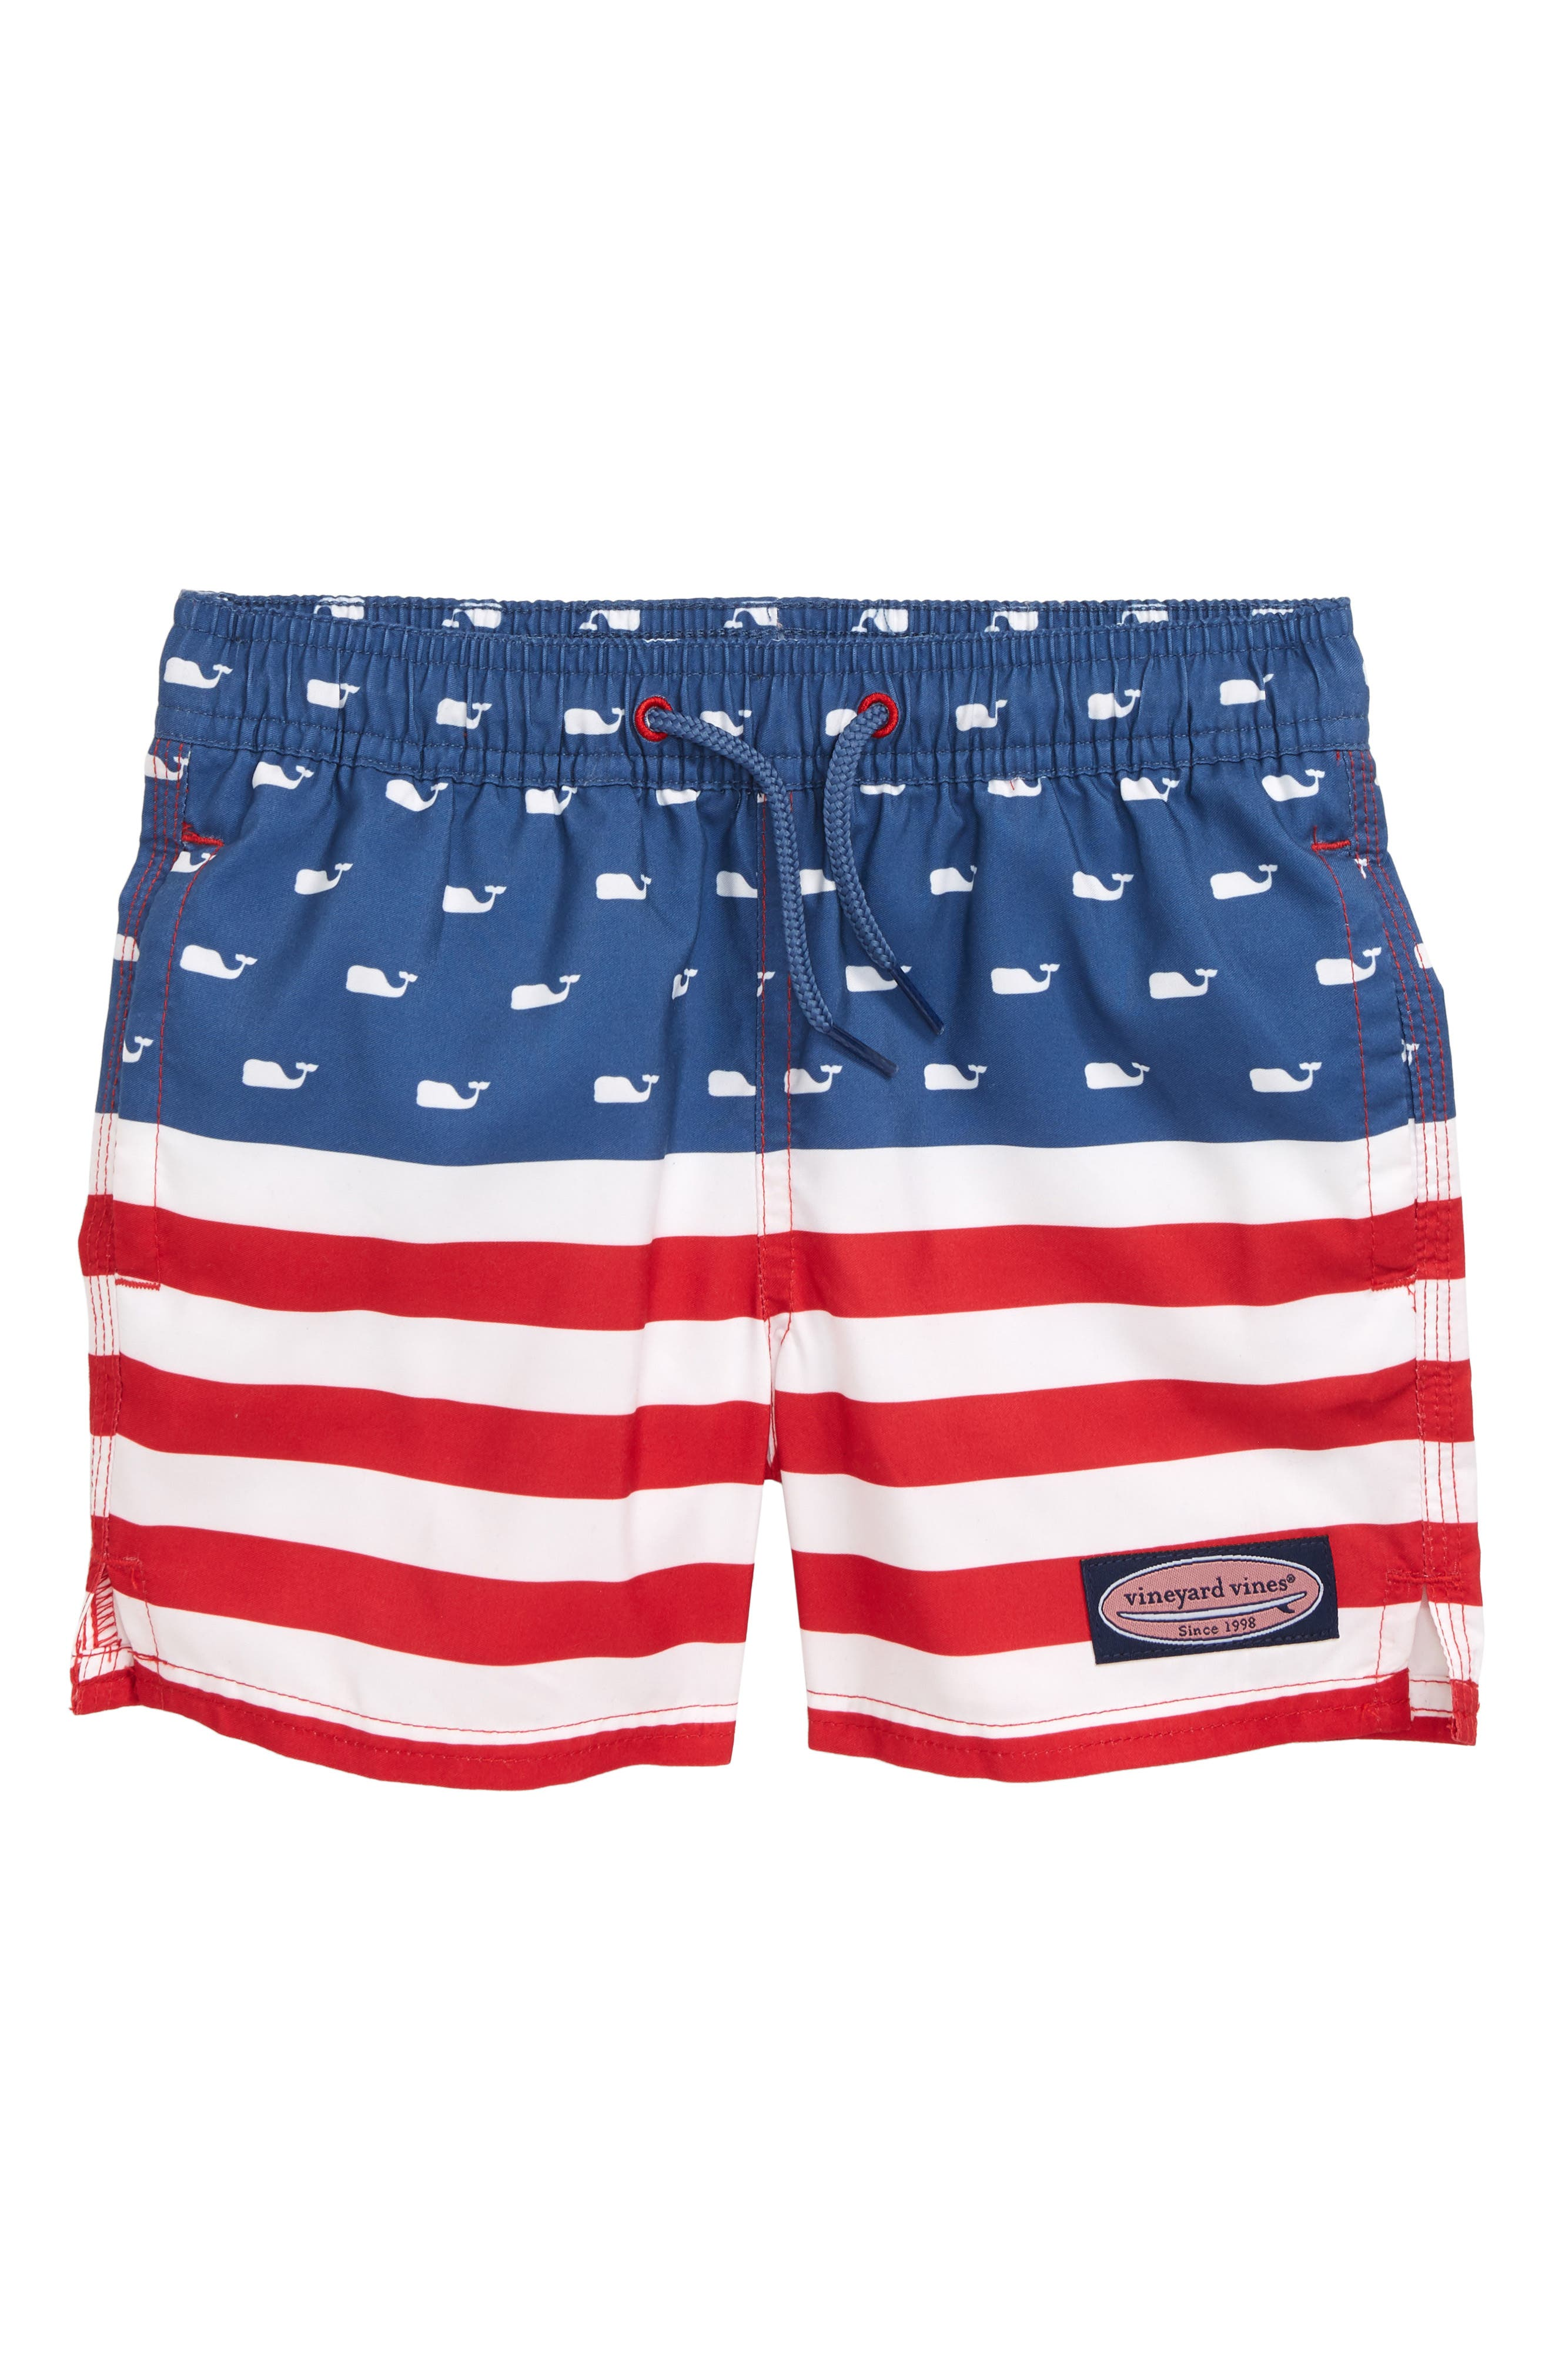 Toddler Boys Vineyard Vines Chappy Usa Flag Swim Trunks Size 4T  Red